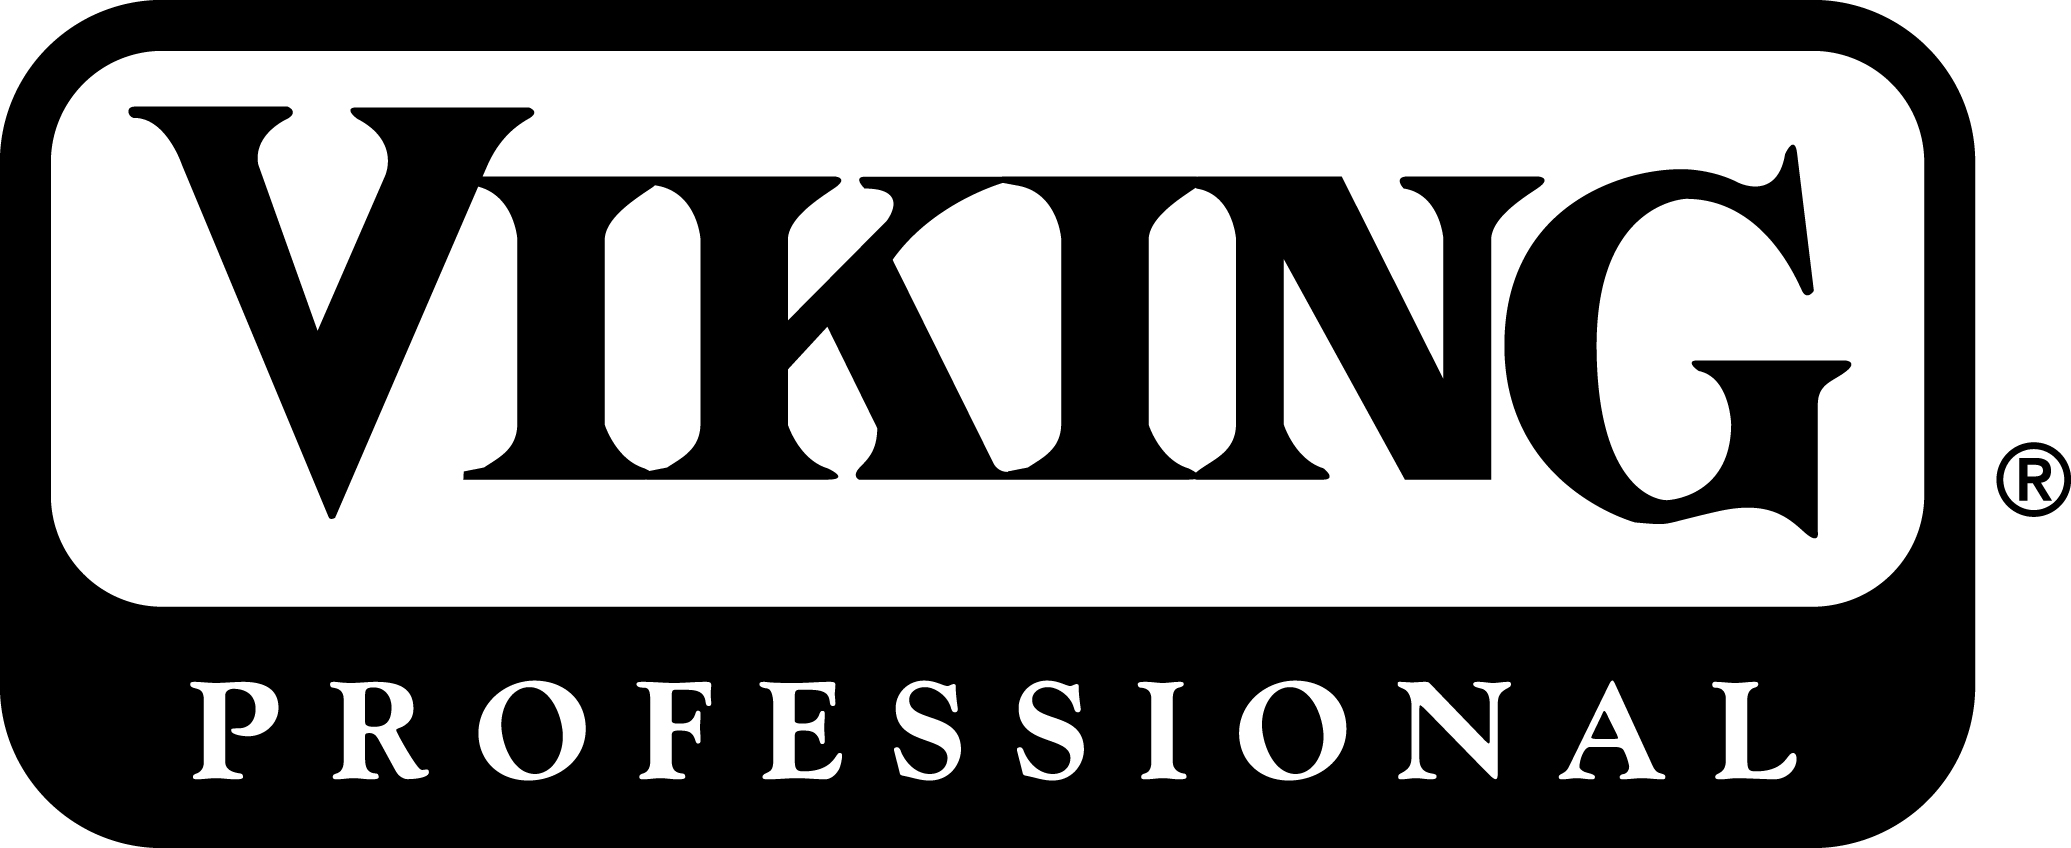 Viking Fridge Maintenance, GE Refrigerator Repair